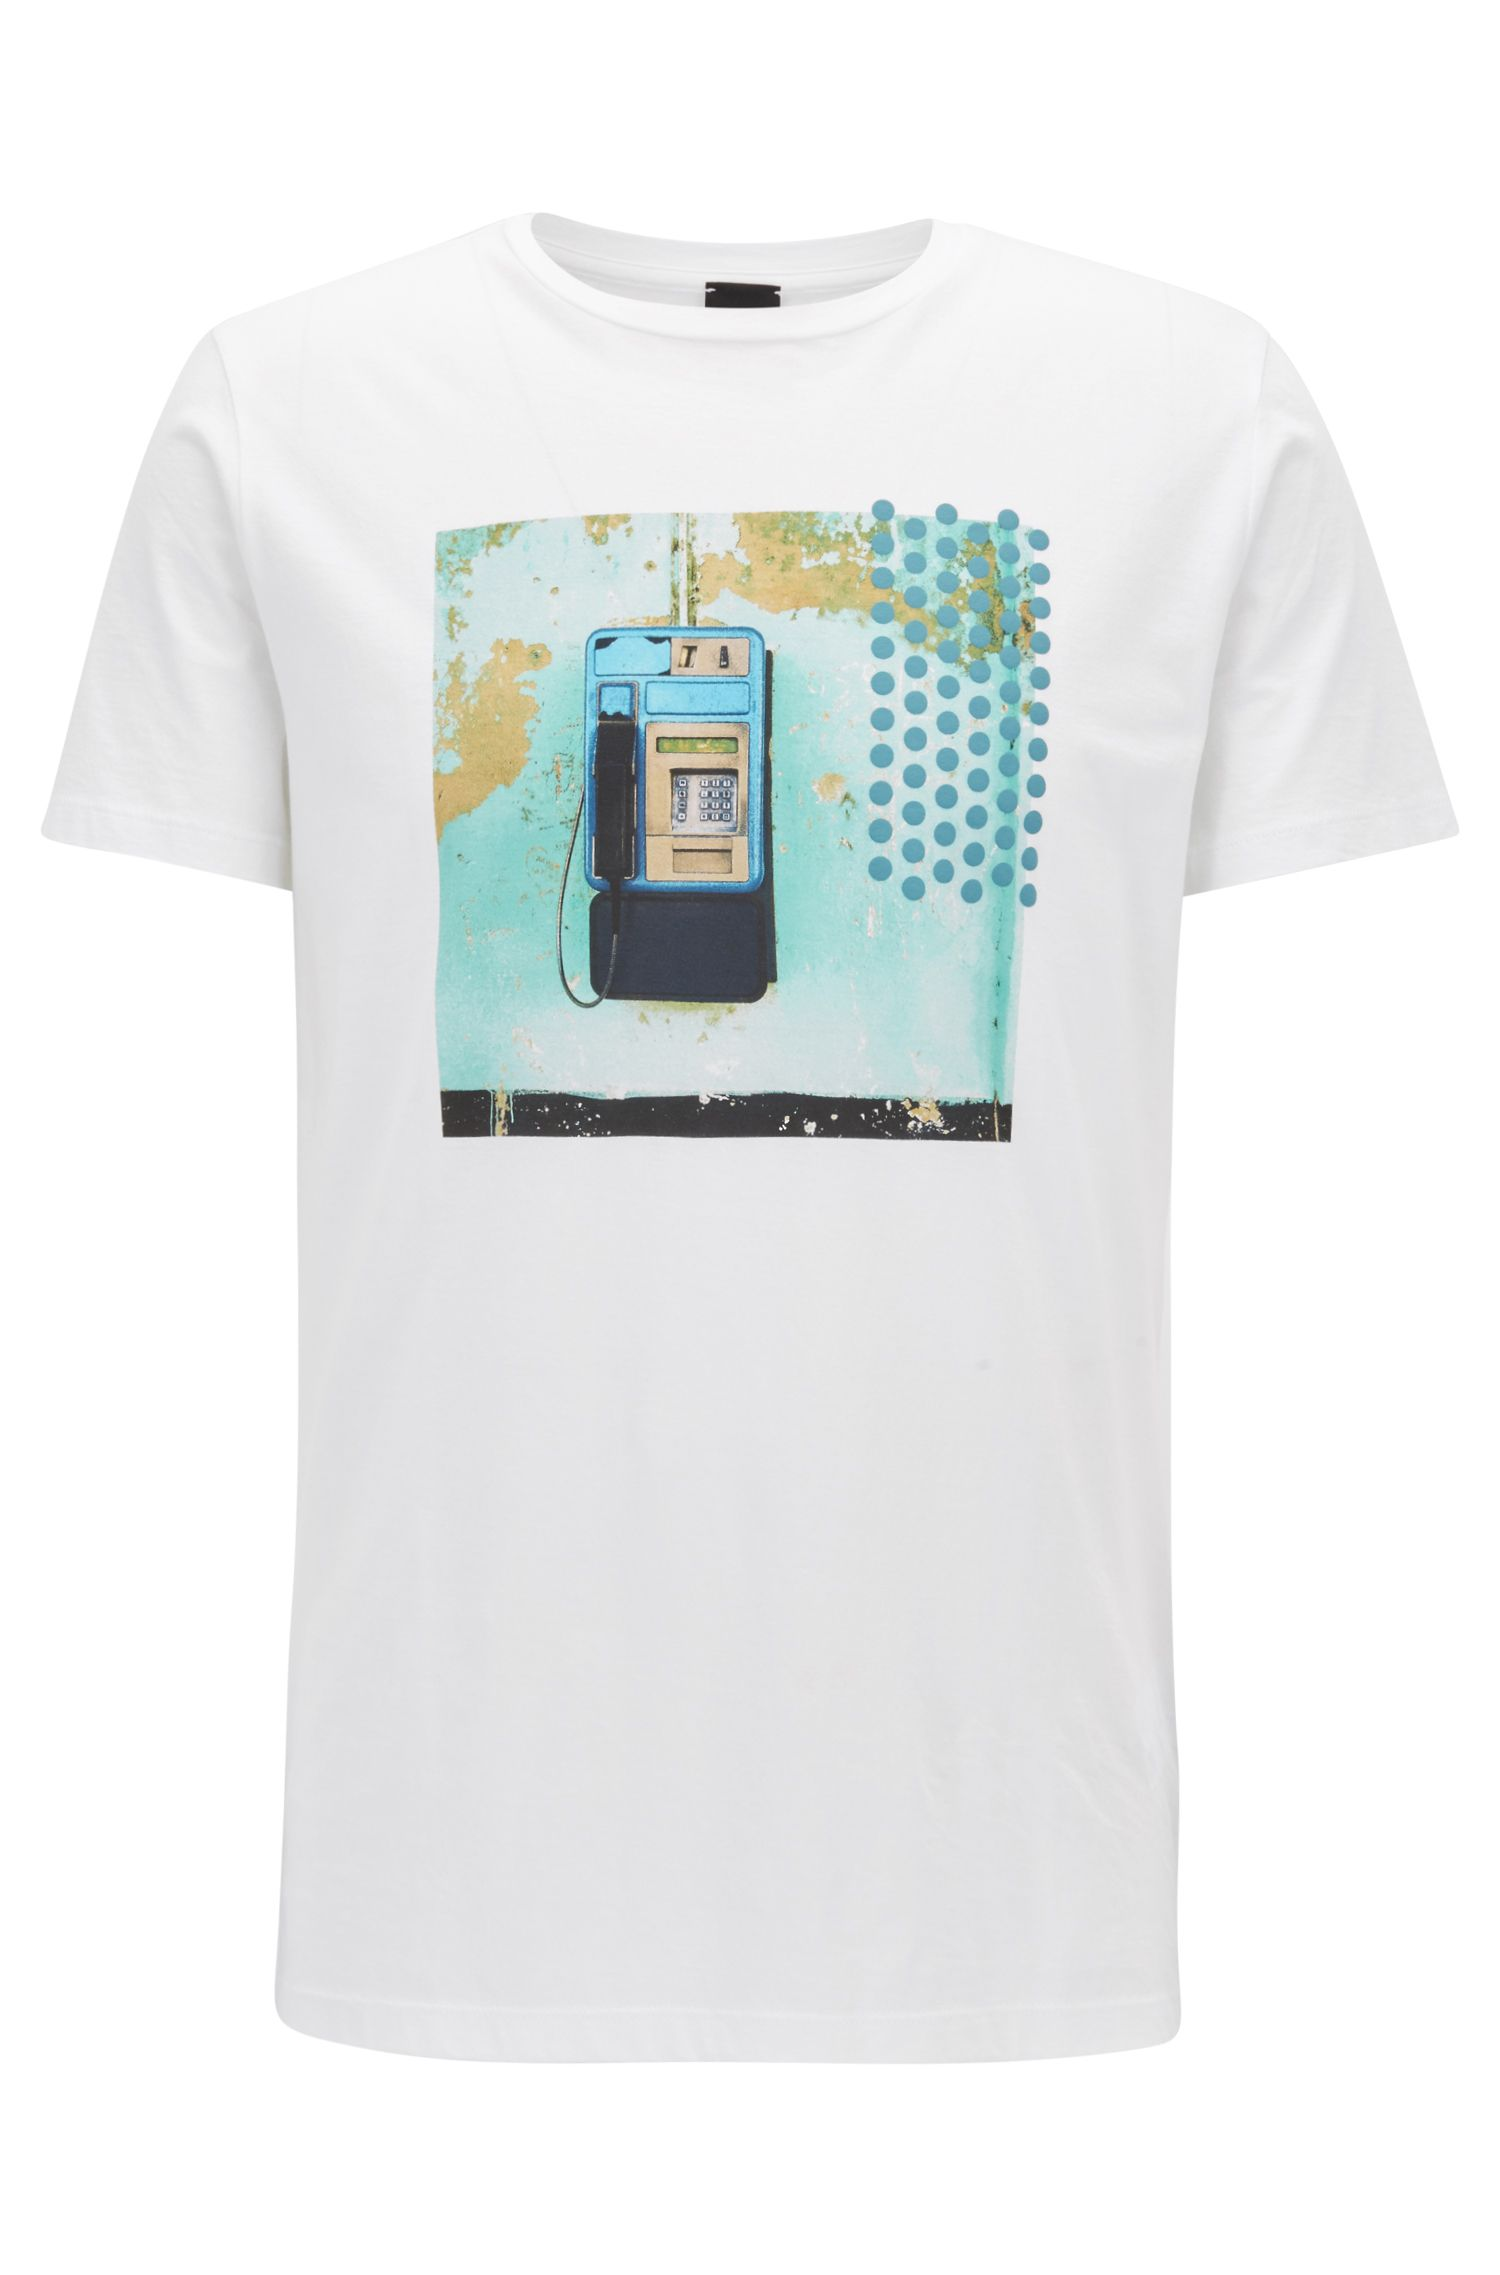 Cotton Graphic T-Shirt | Timen